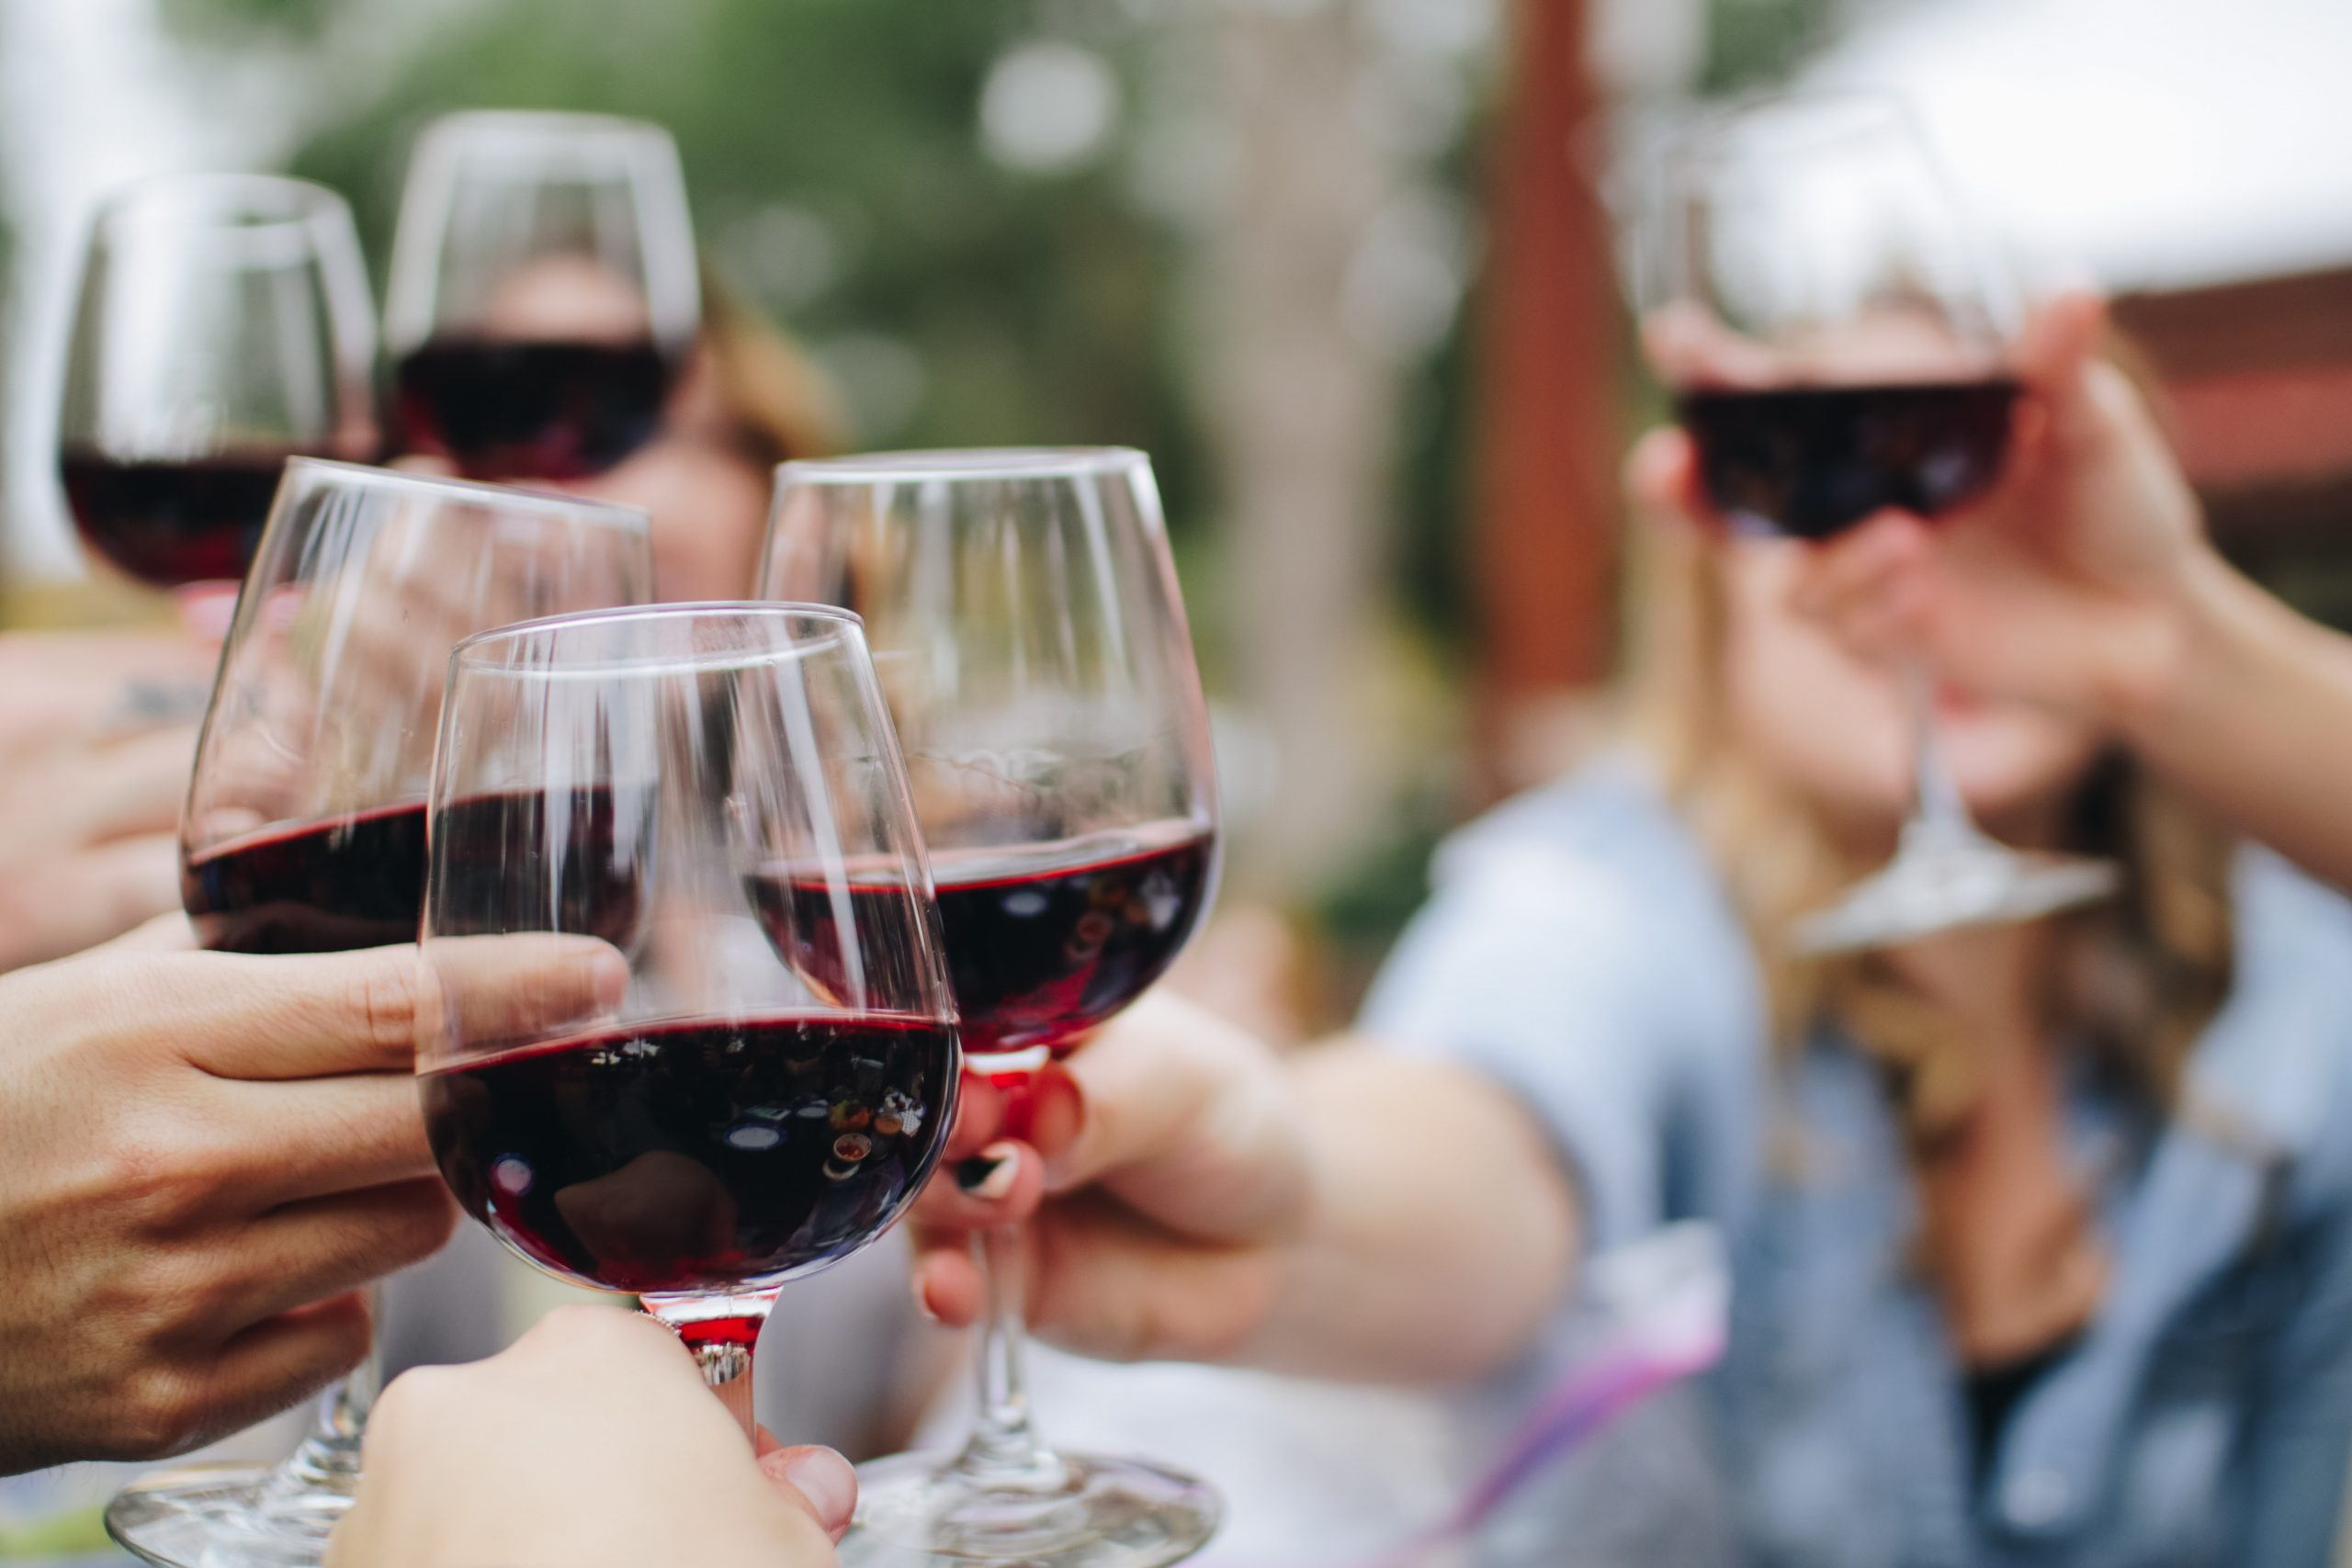 Residents Invited to Wine Down Wednesday on August 18th